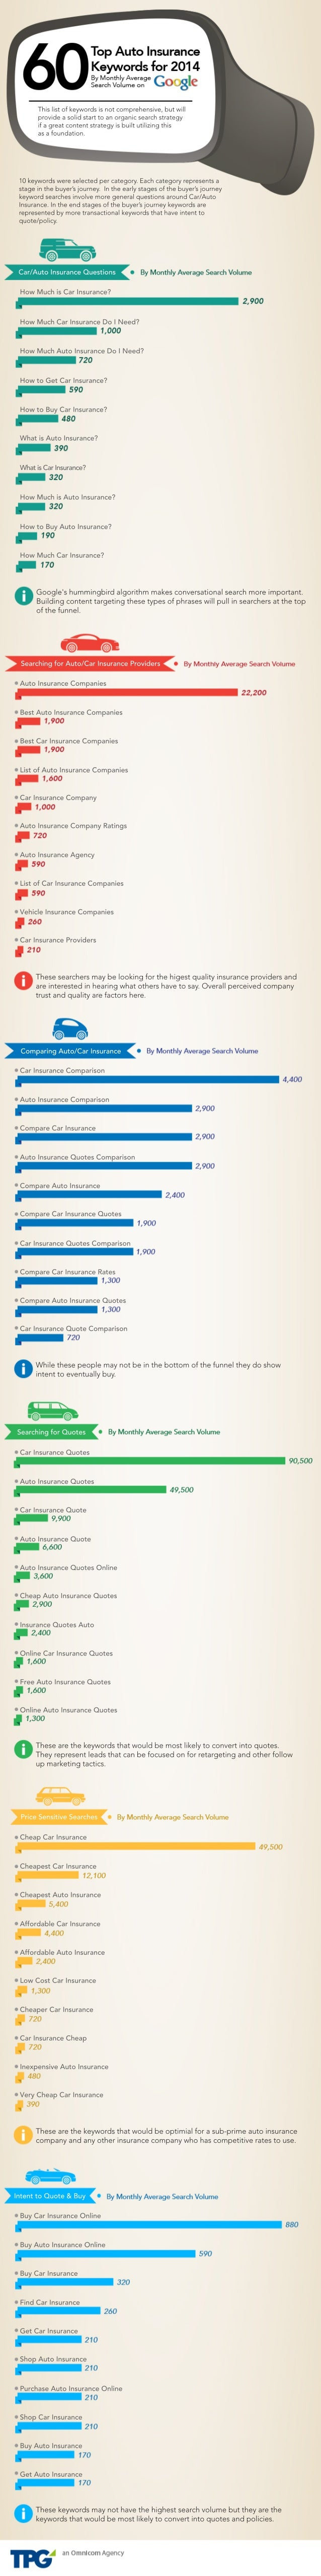 Infographic 60 Top Auto Insurance Keywords by Monthly Average Search Volume on Google